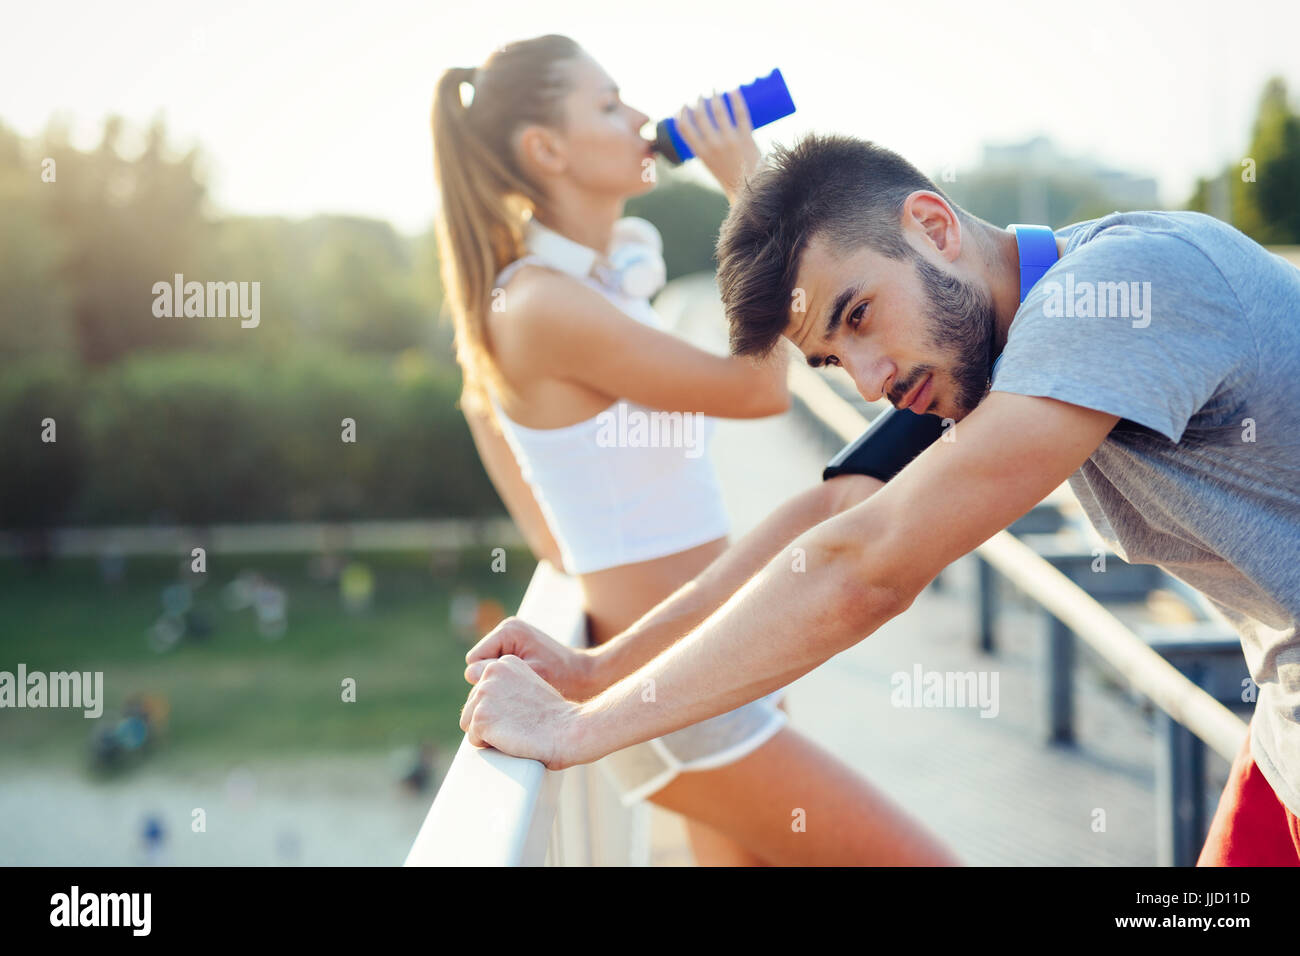 Portrait of man and woman during break of jogging - Stock Image